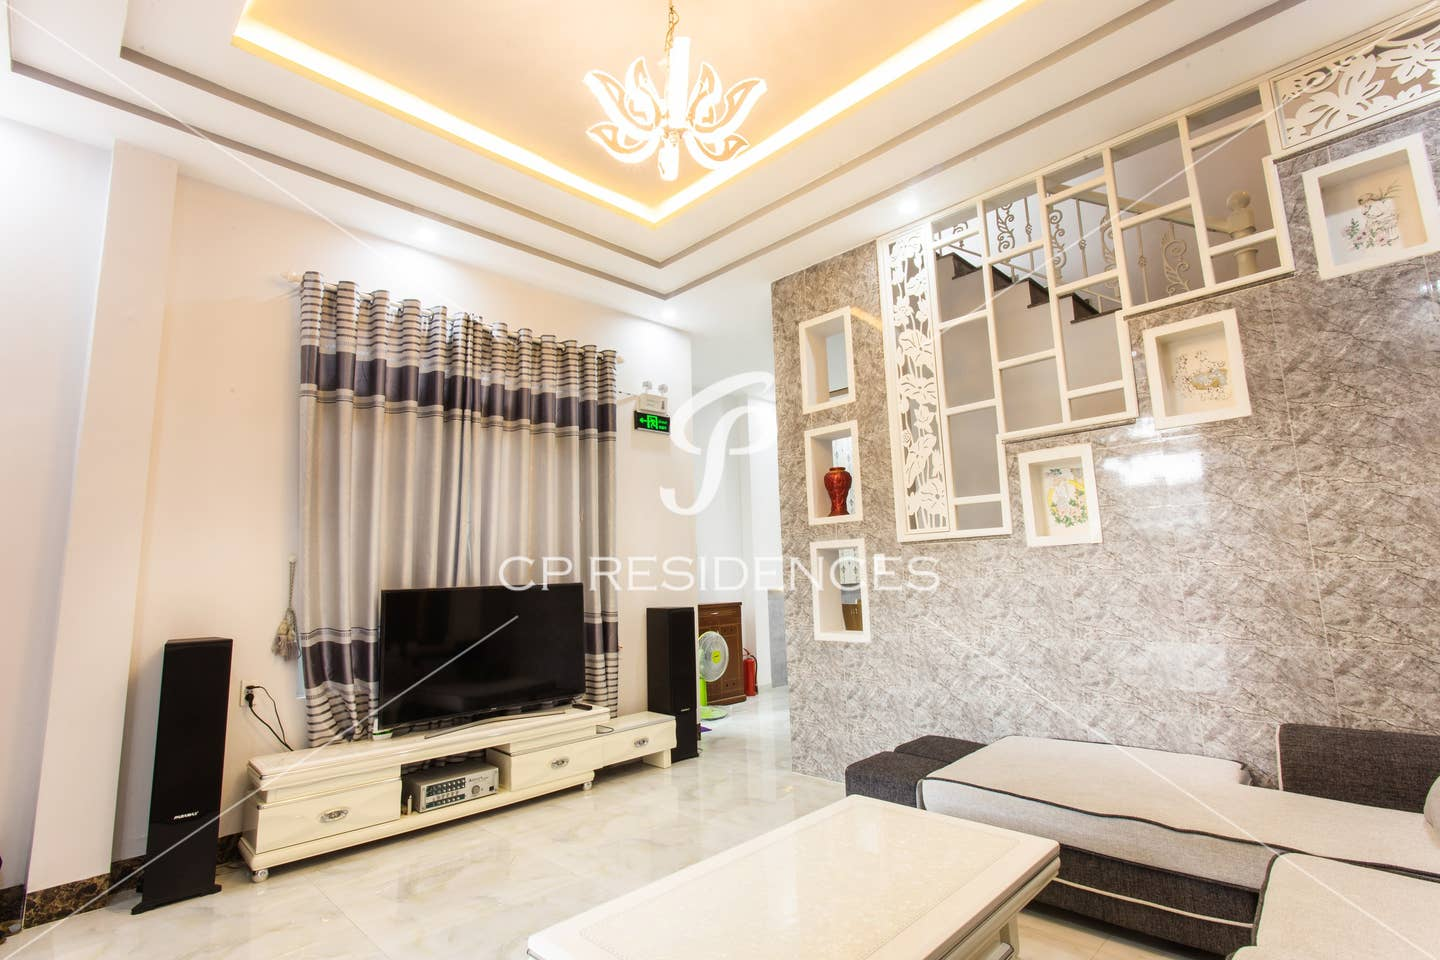 Exquisite 3BR - 2-storey house with a terrace